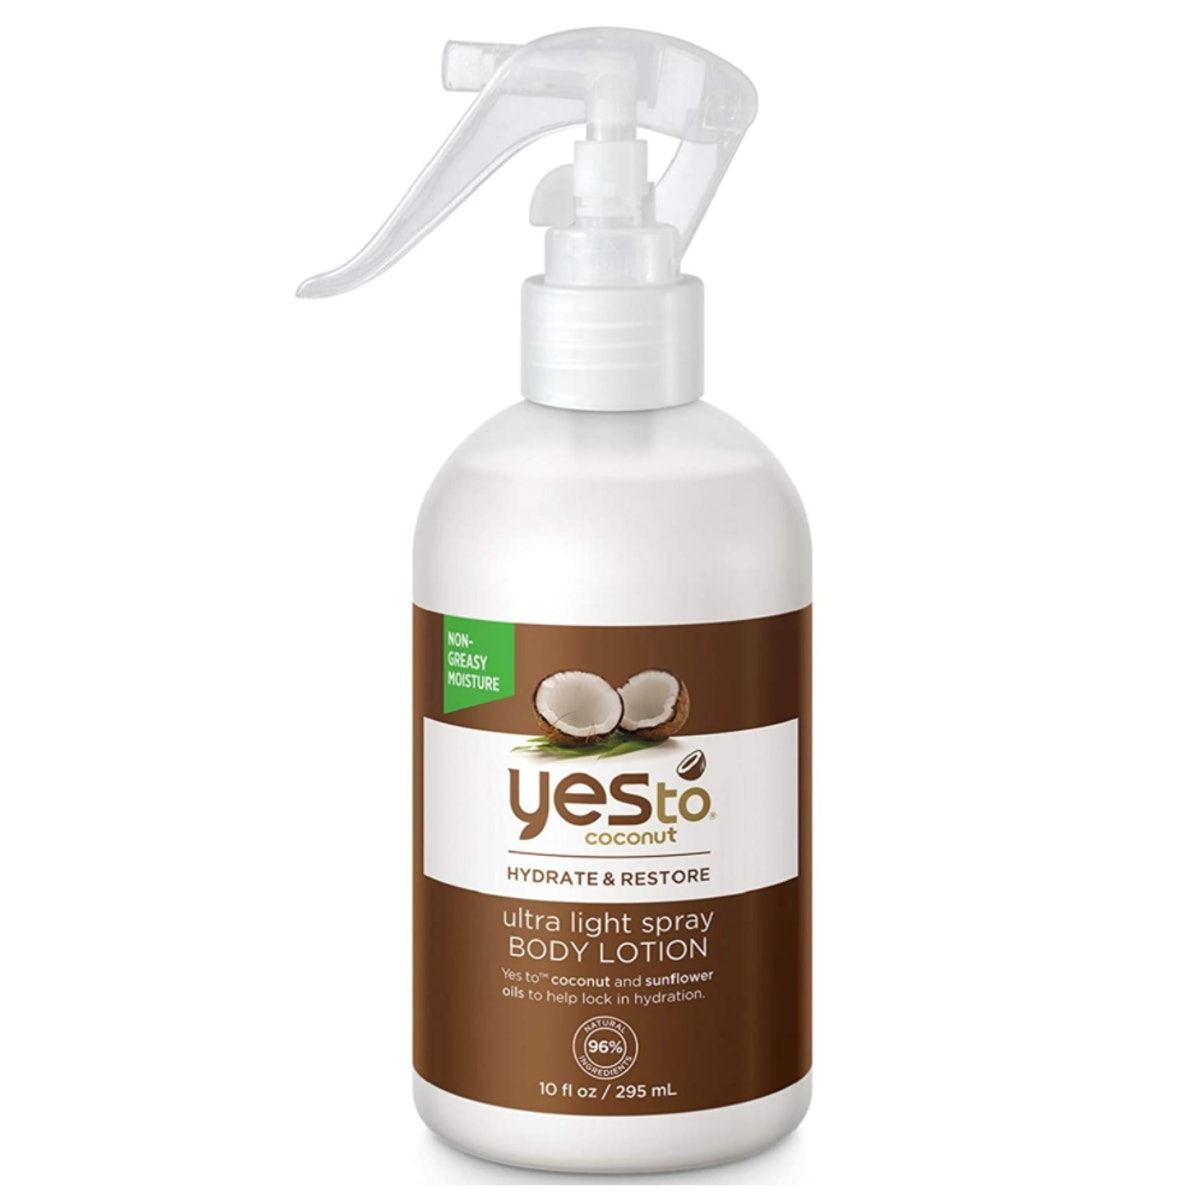 Yes to Coconut Ultra Light Spray Body Lotion, 10 Oz.